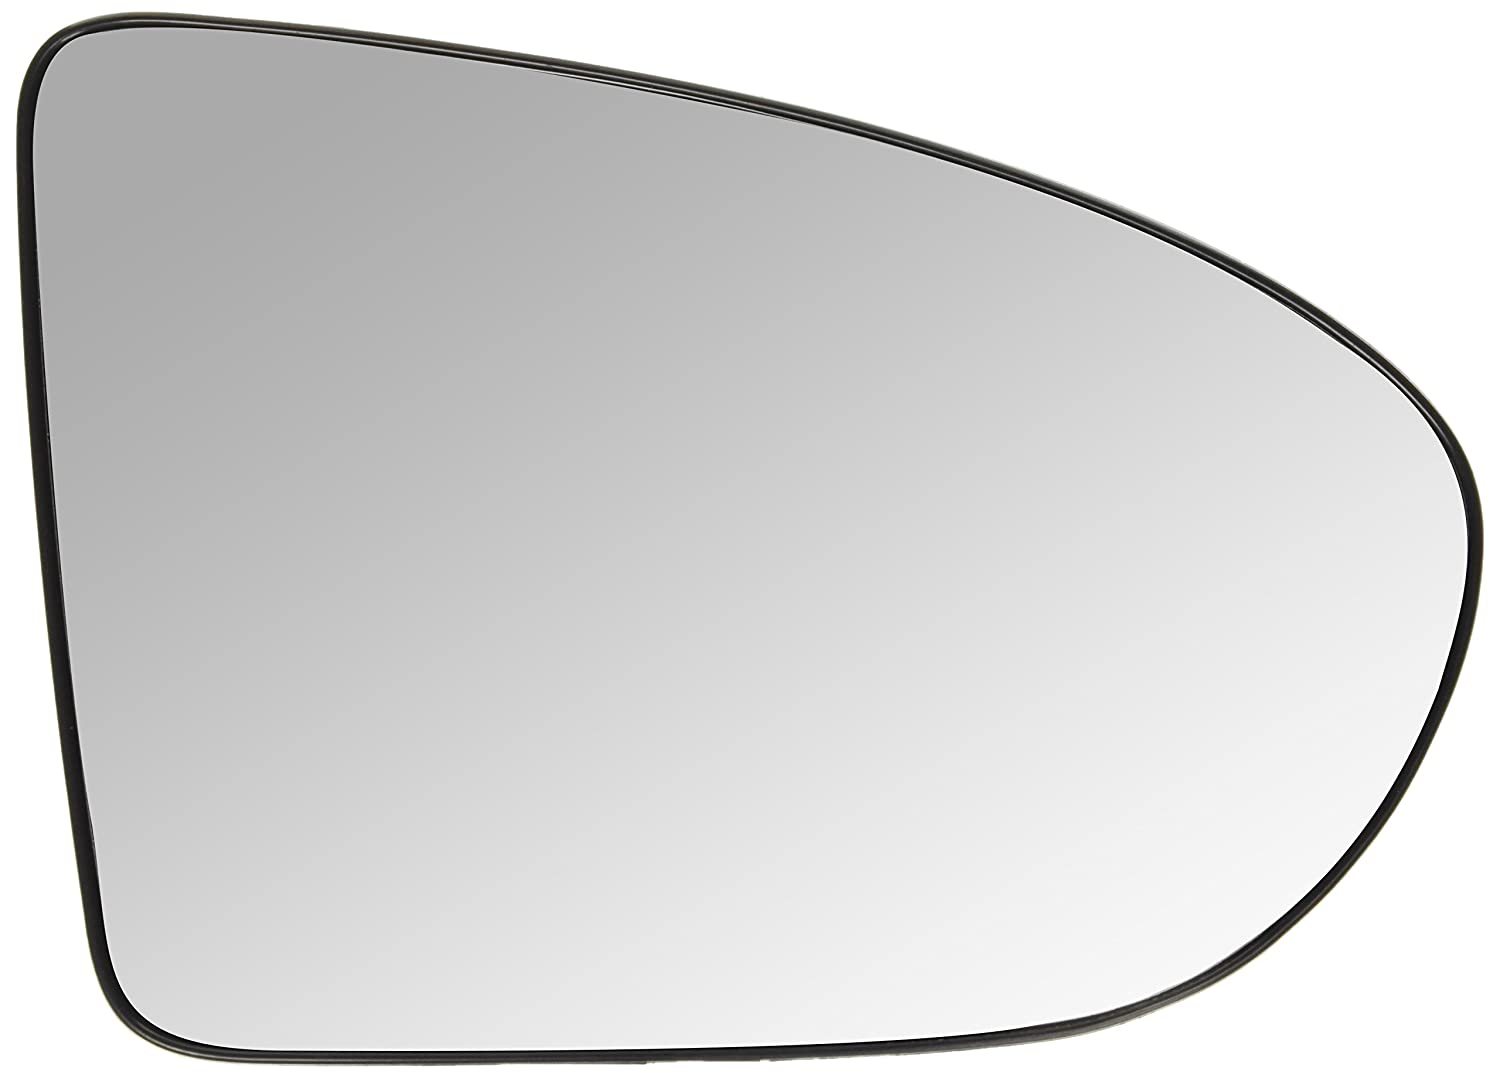 TarosTrade 57-0804-R-46872 Mirror Glass Heated